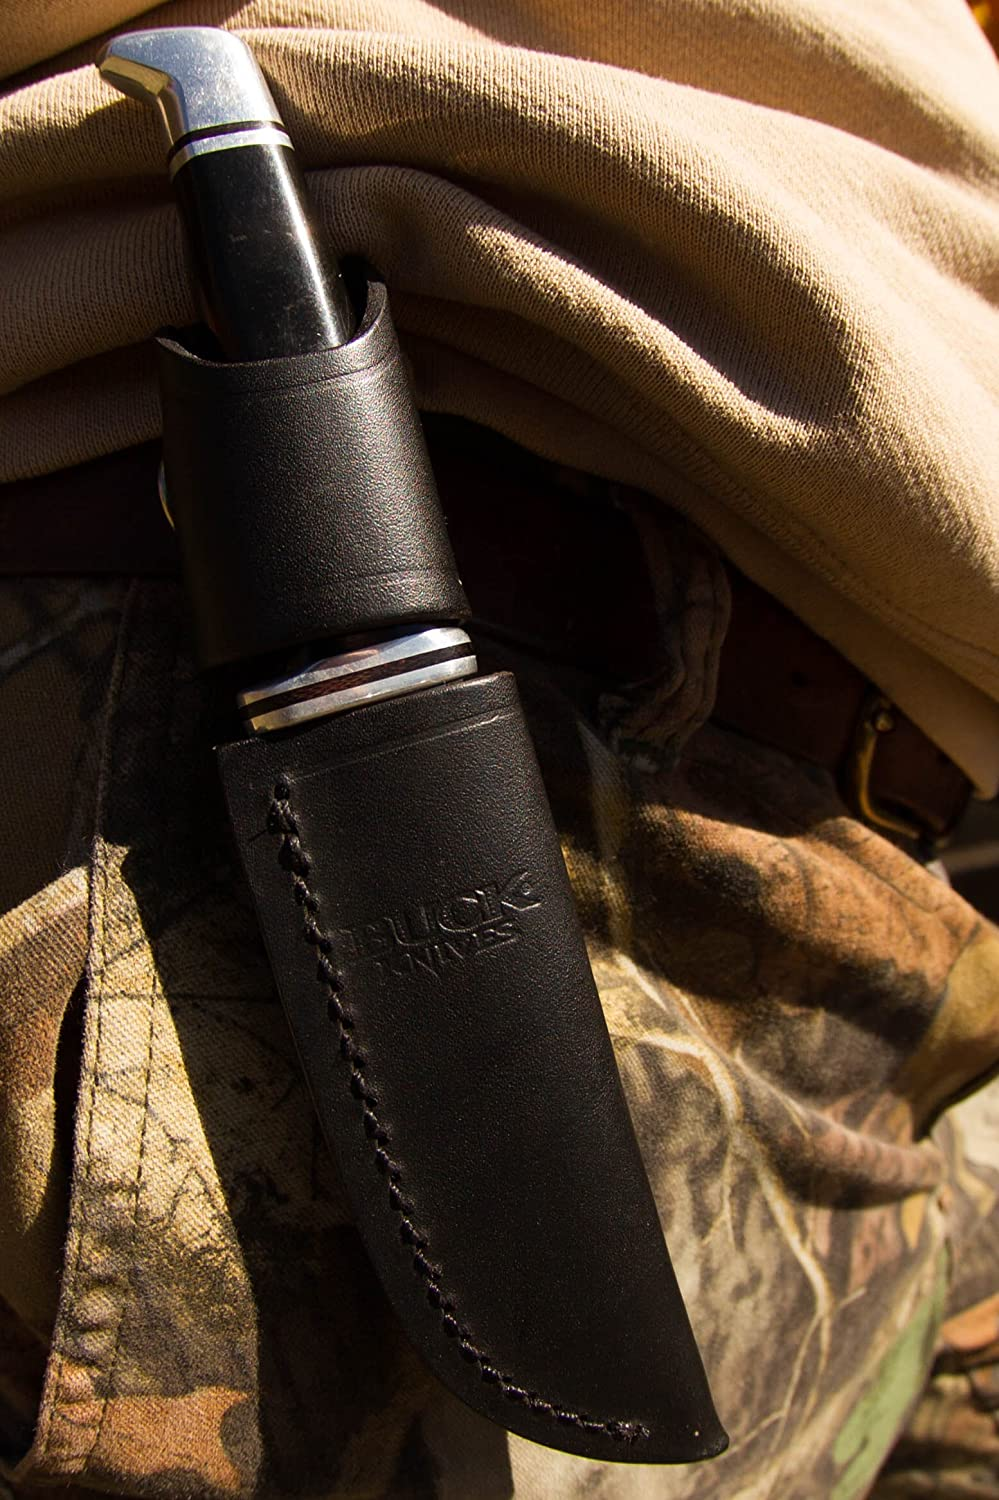 Buck 102 Review